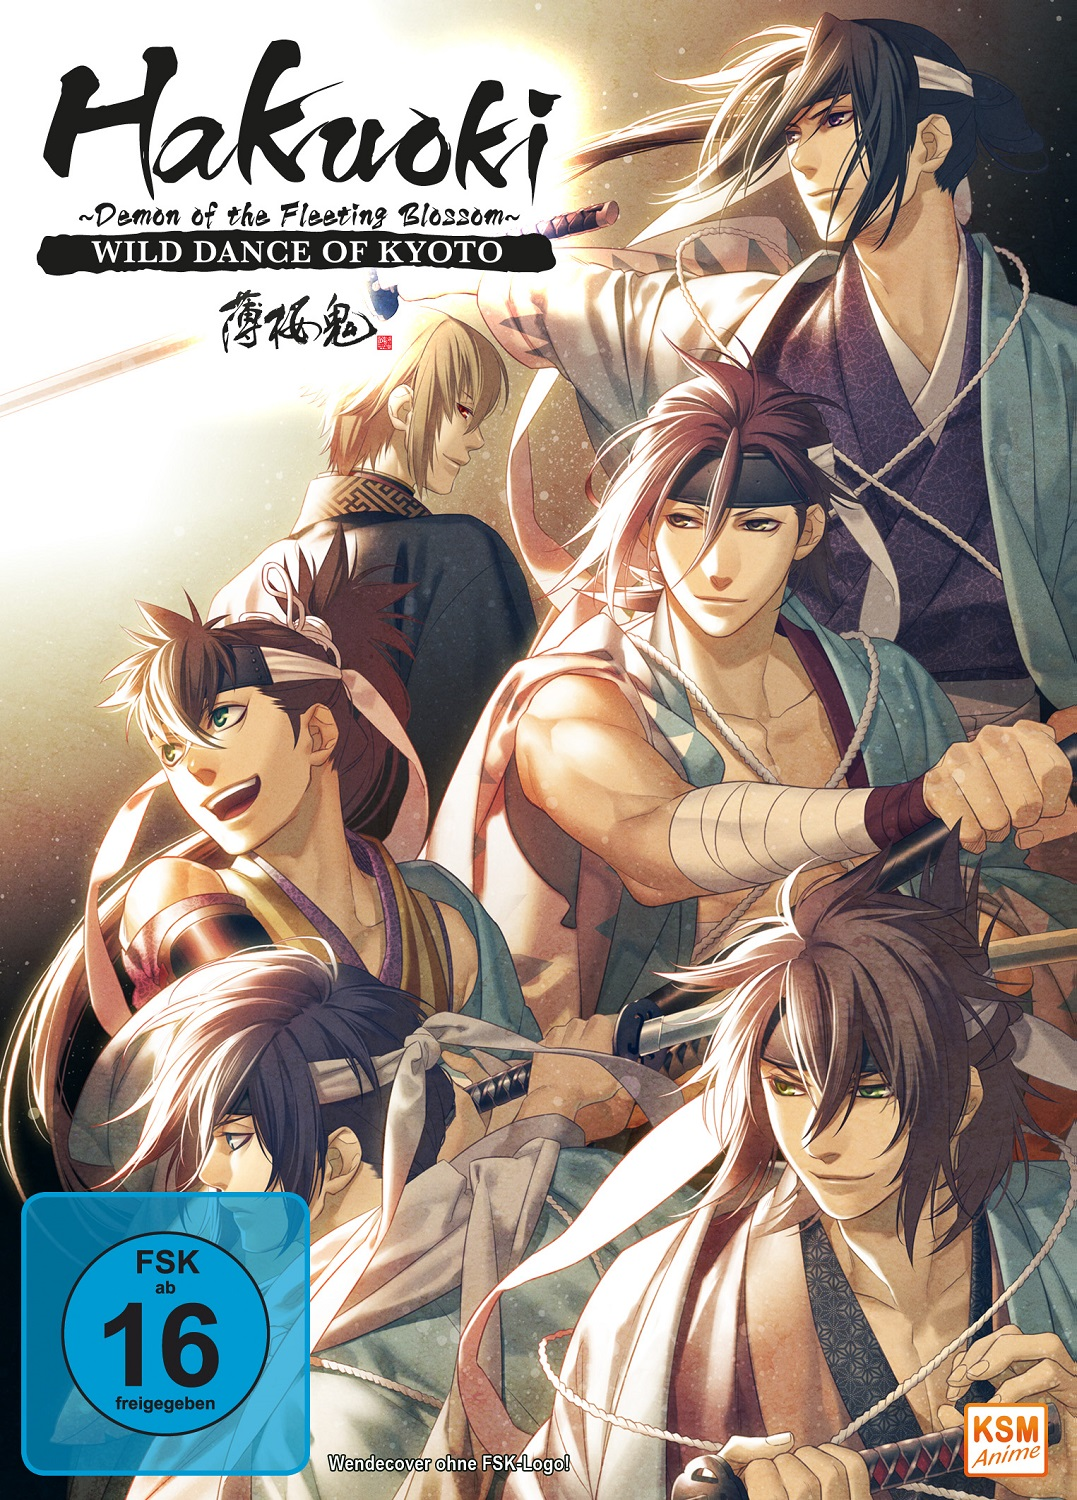 Hakuoki - The Movie 1: Demon of the Fleeting Blossom - Wild Dance of Kyoto